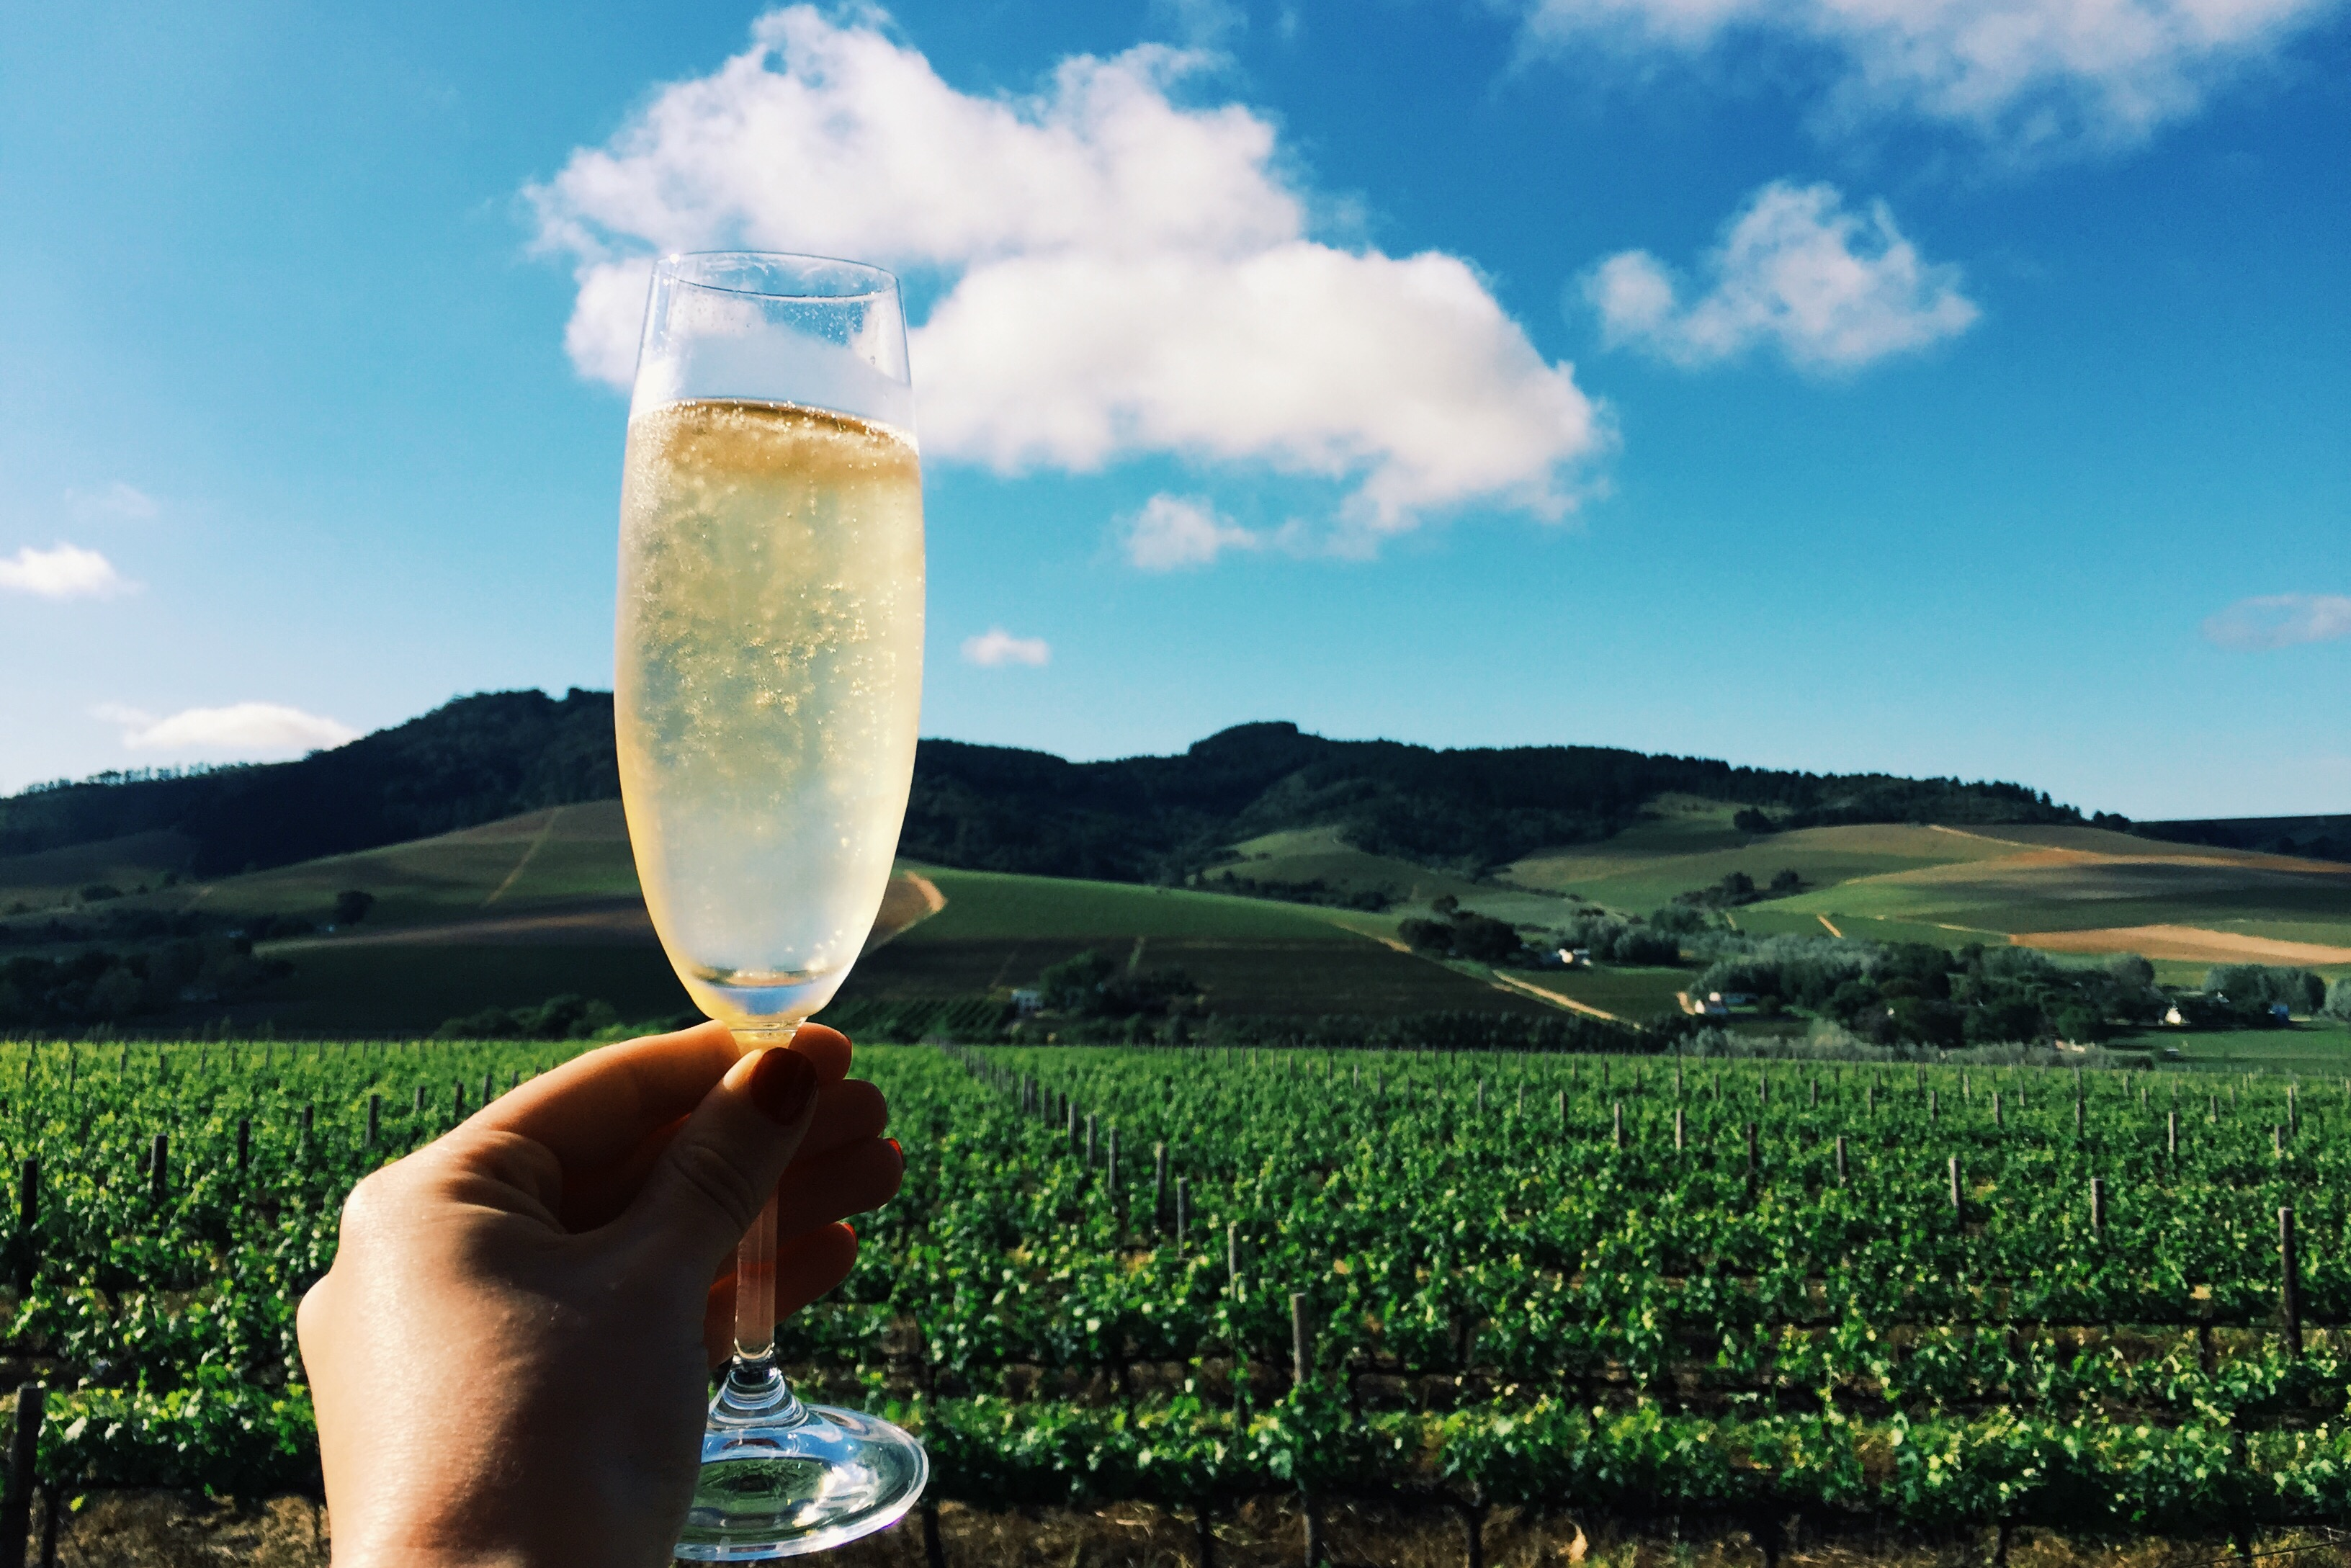 Exploring the Stellenbosch Valley: Day 2